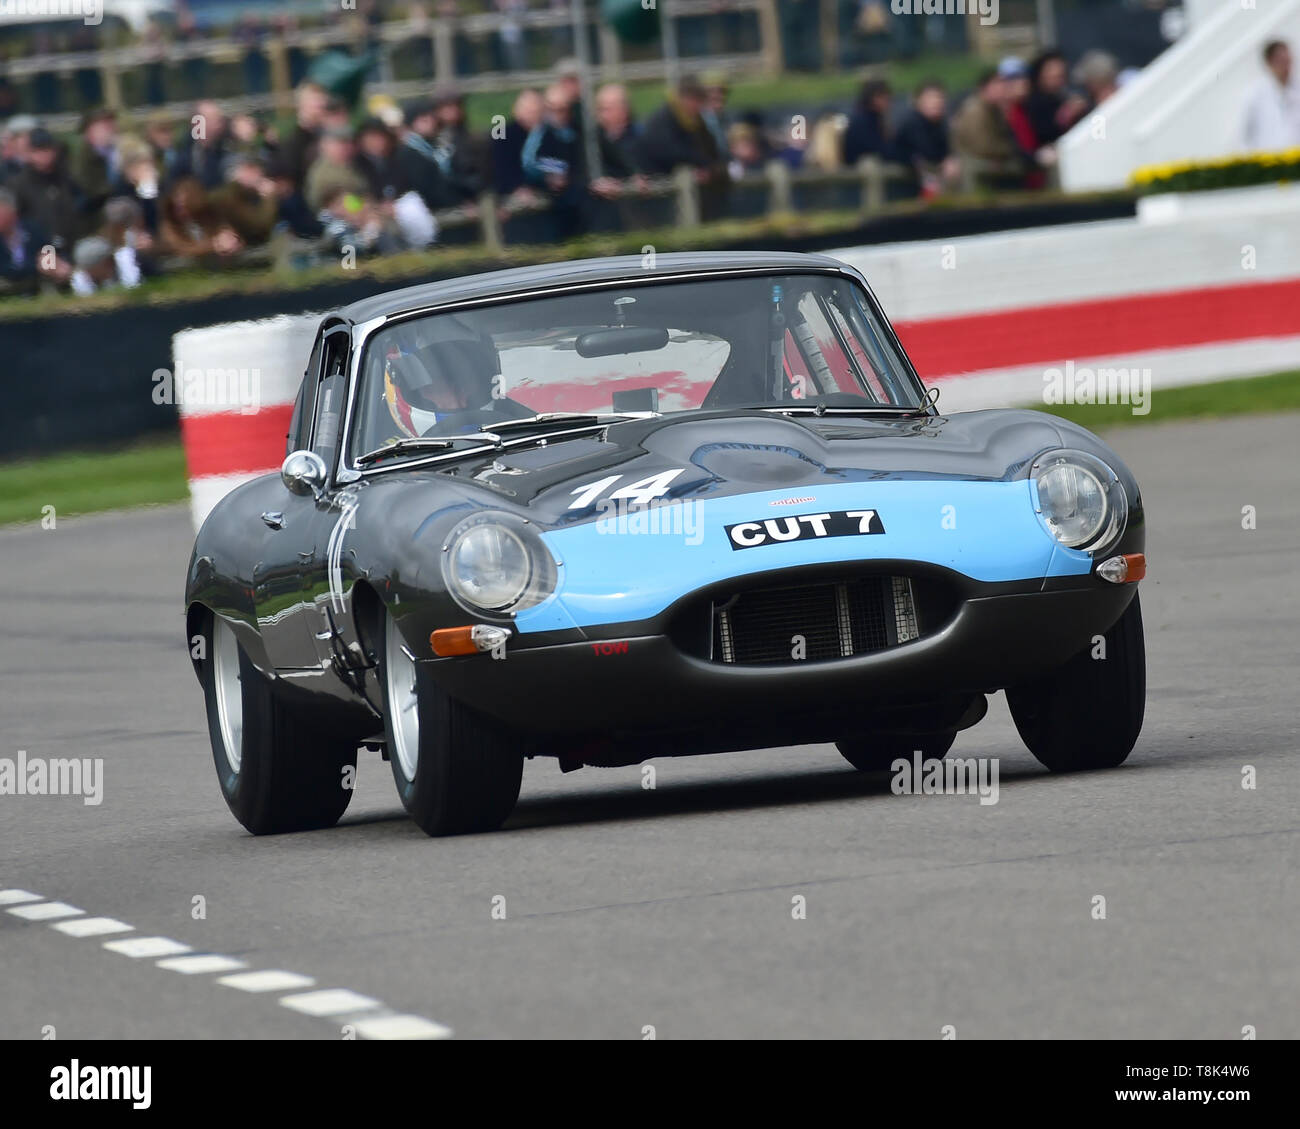 Richard Meins, Andrew Bentley, Jaguar E-Type FHC, Graham Hill Trophy, Closed cockpit GT cars, Prototype cars, Spirit of the RAC TT Races 1960-1964, 77 - Stock Image